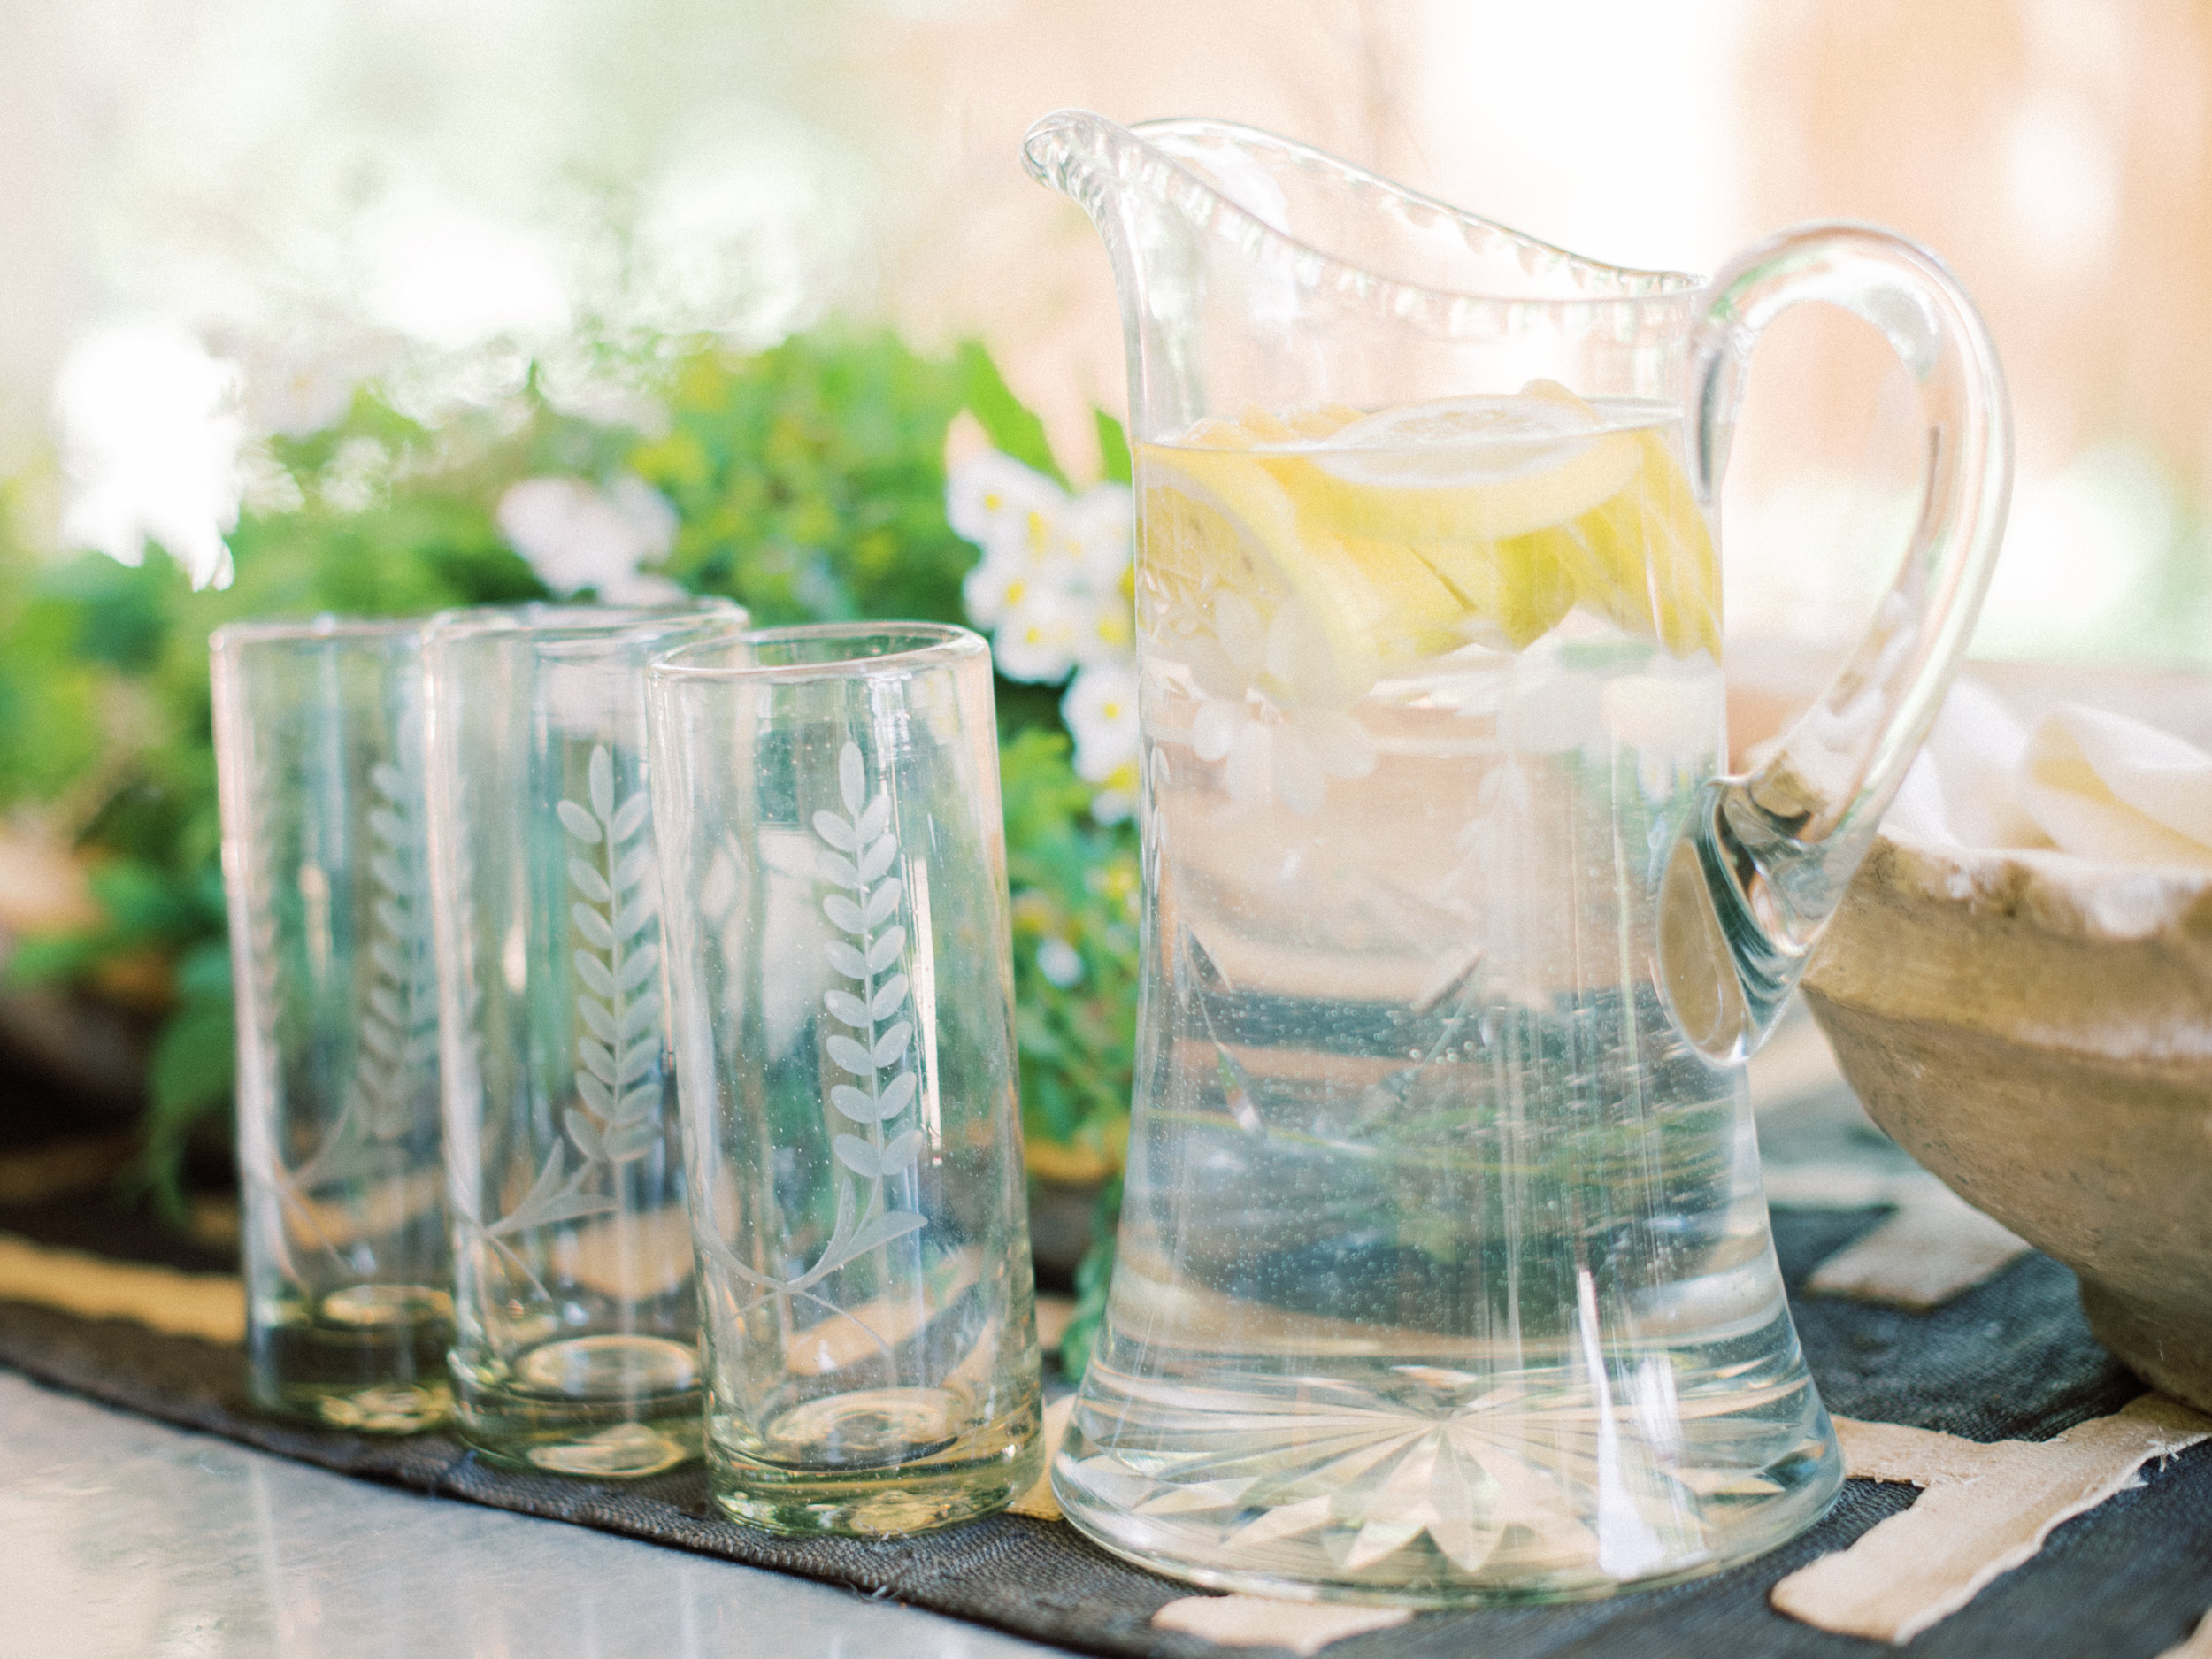 Etched Glass - If you have ever been in The NAT, you know that we are big fans of etched glass! They add a little something special to your everyday drinkware. You can find beautifully ornate etched pieces or even something simple and dainty.